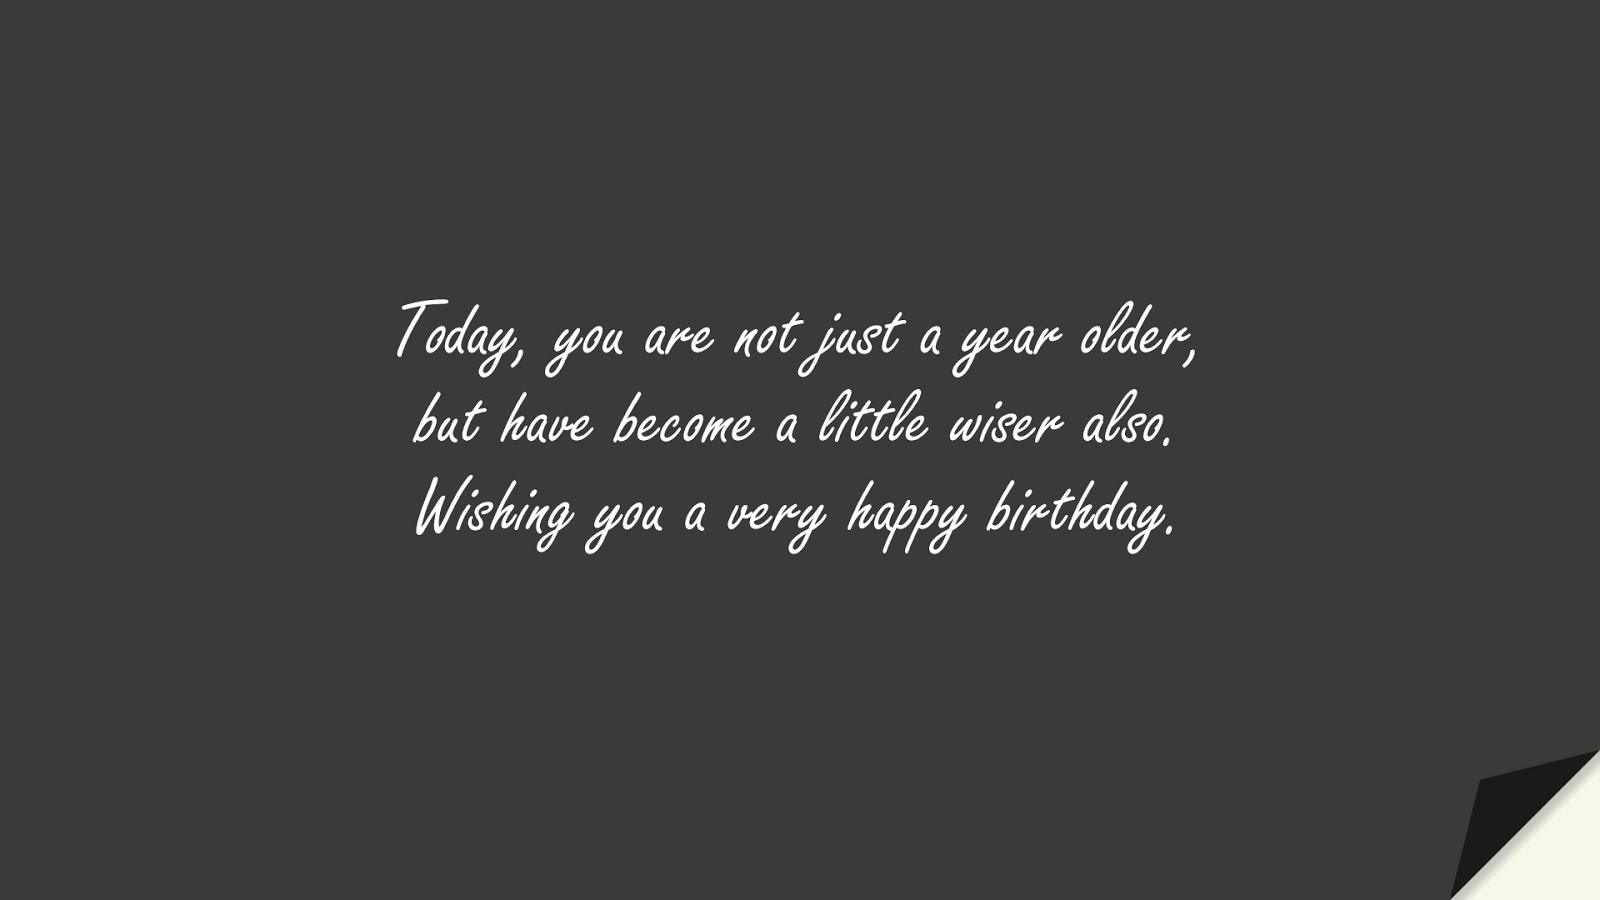 Today, you are not just a year older, but have become a little wiser also. Wishing you a very happy birthday.FALSE